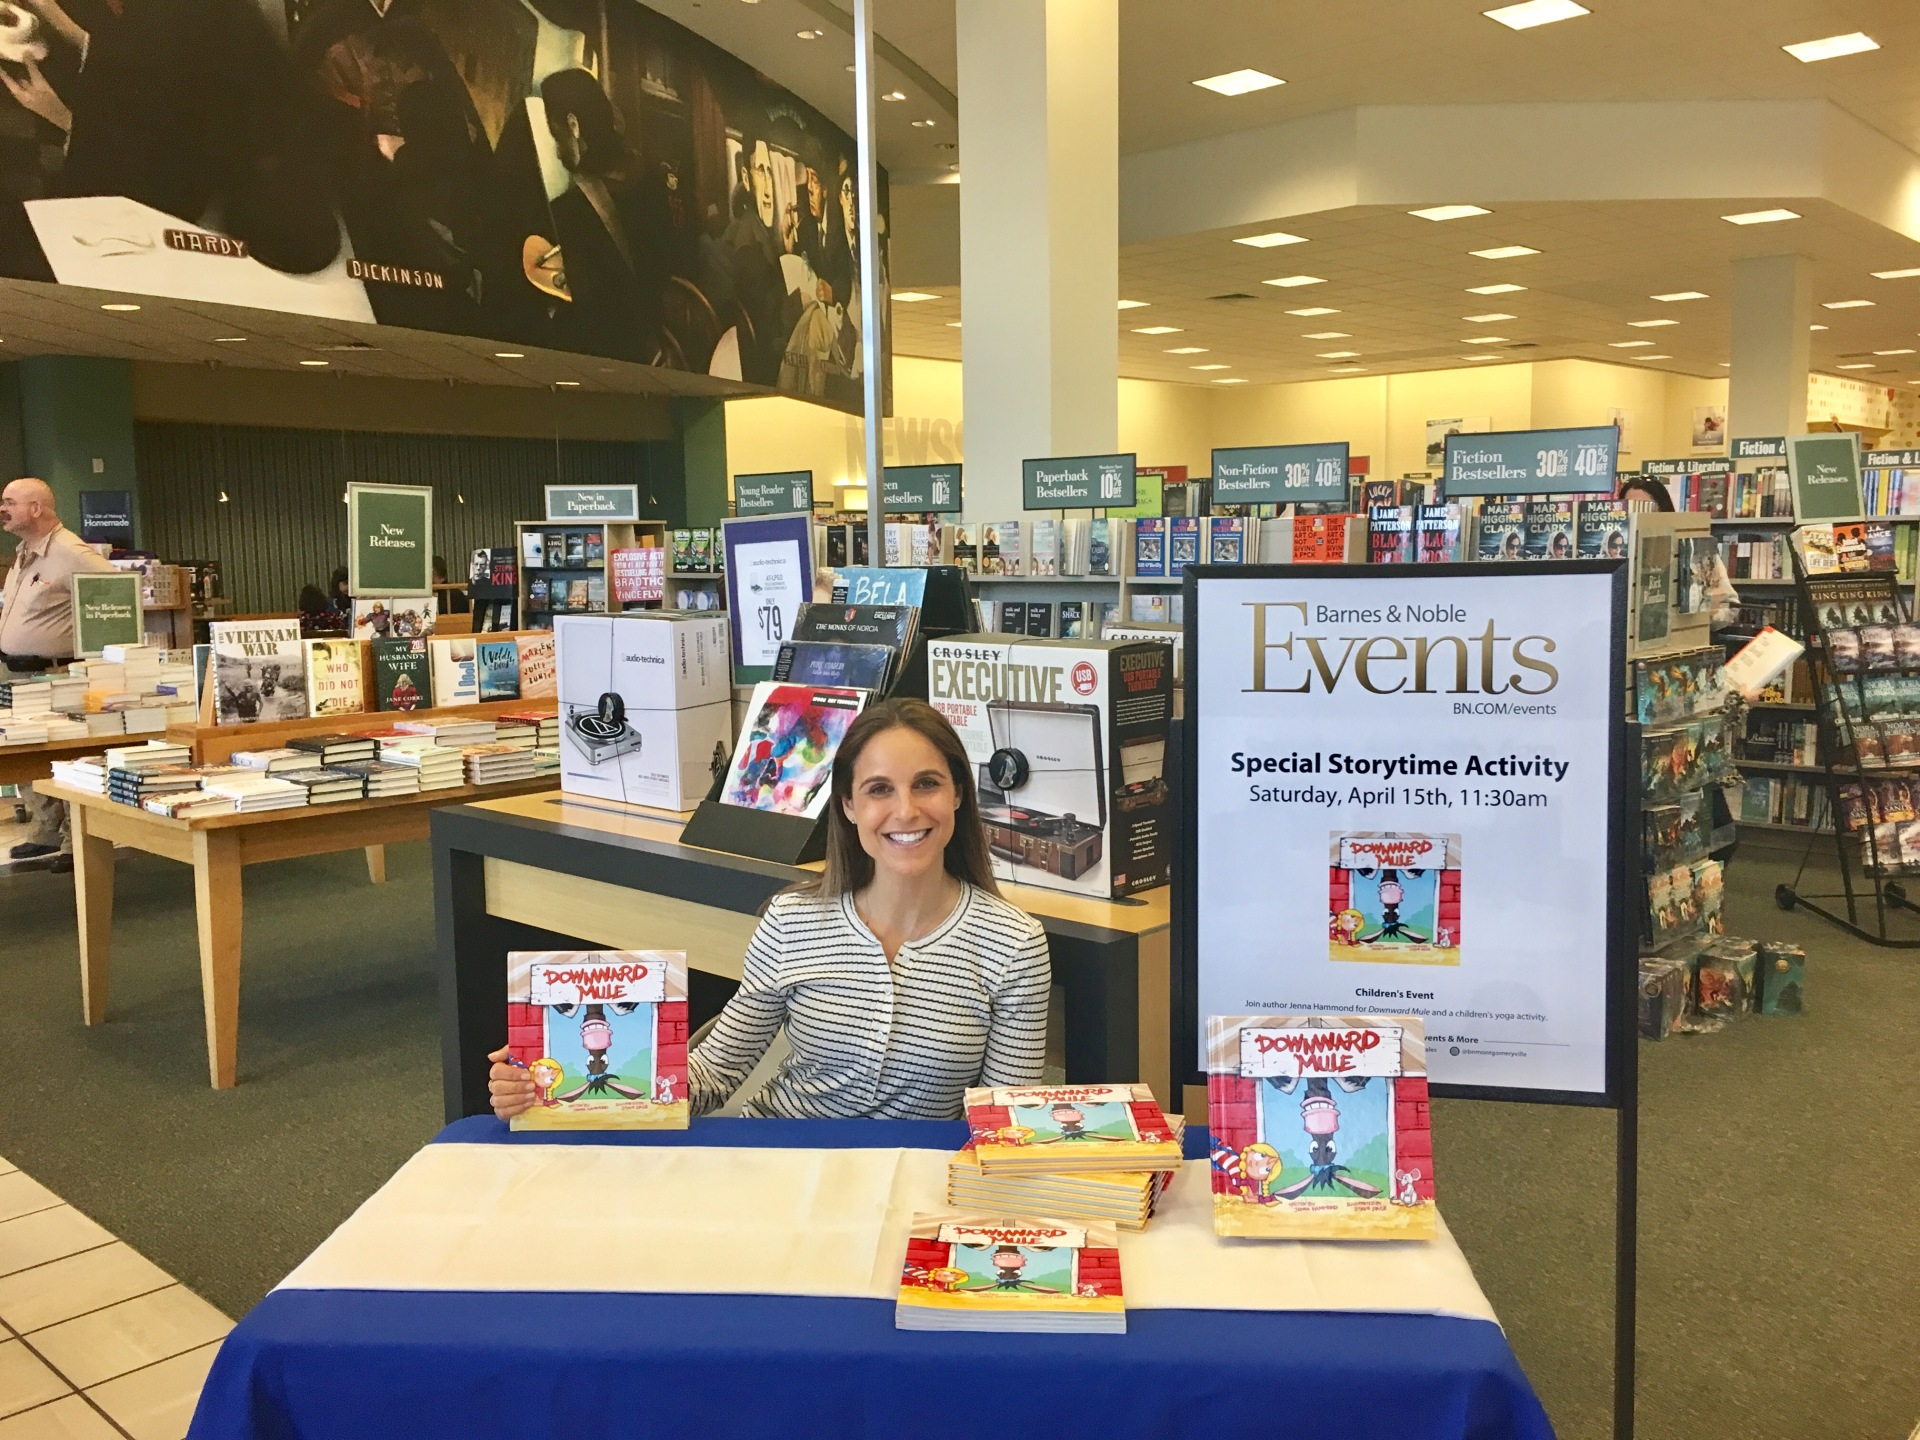 Jenna Hammond doing Barnes and Noble Author Event 4/15/17